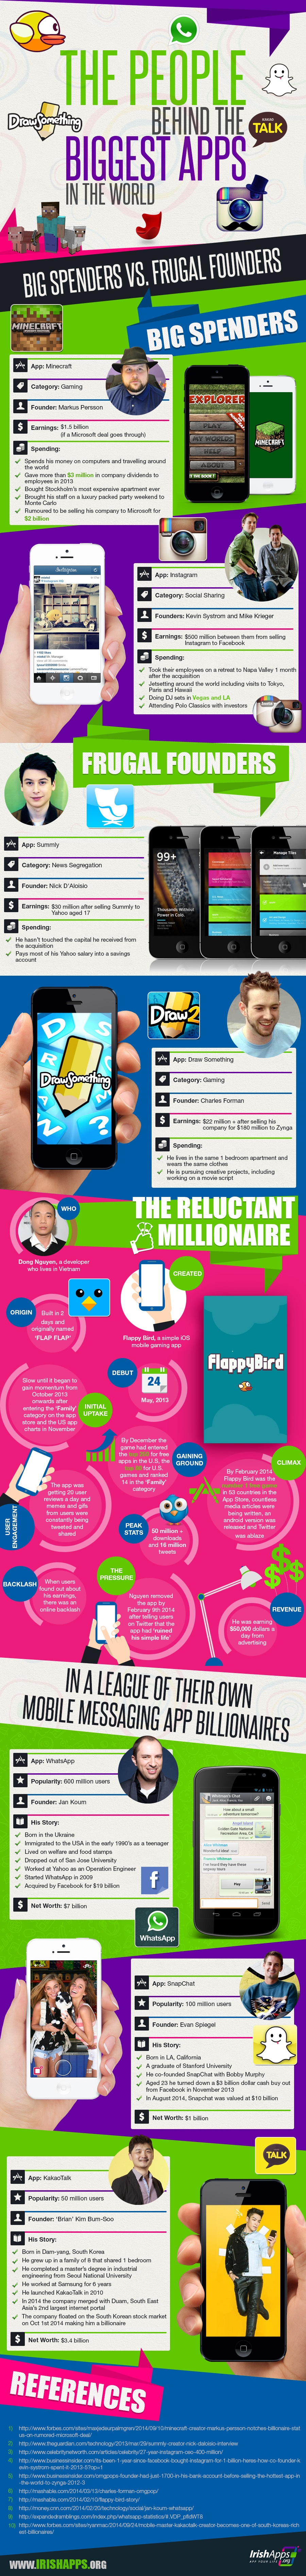 The People Behind The Biggest Apps In The World (Infographic) image People Behind the Apps Infographic.jpg